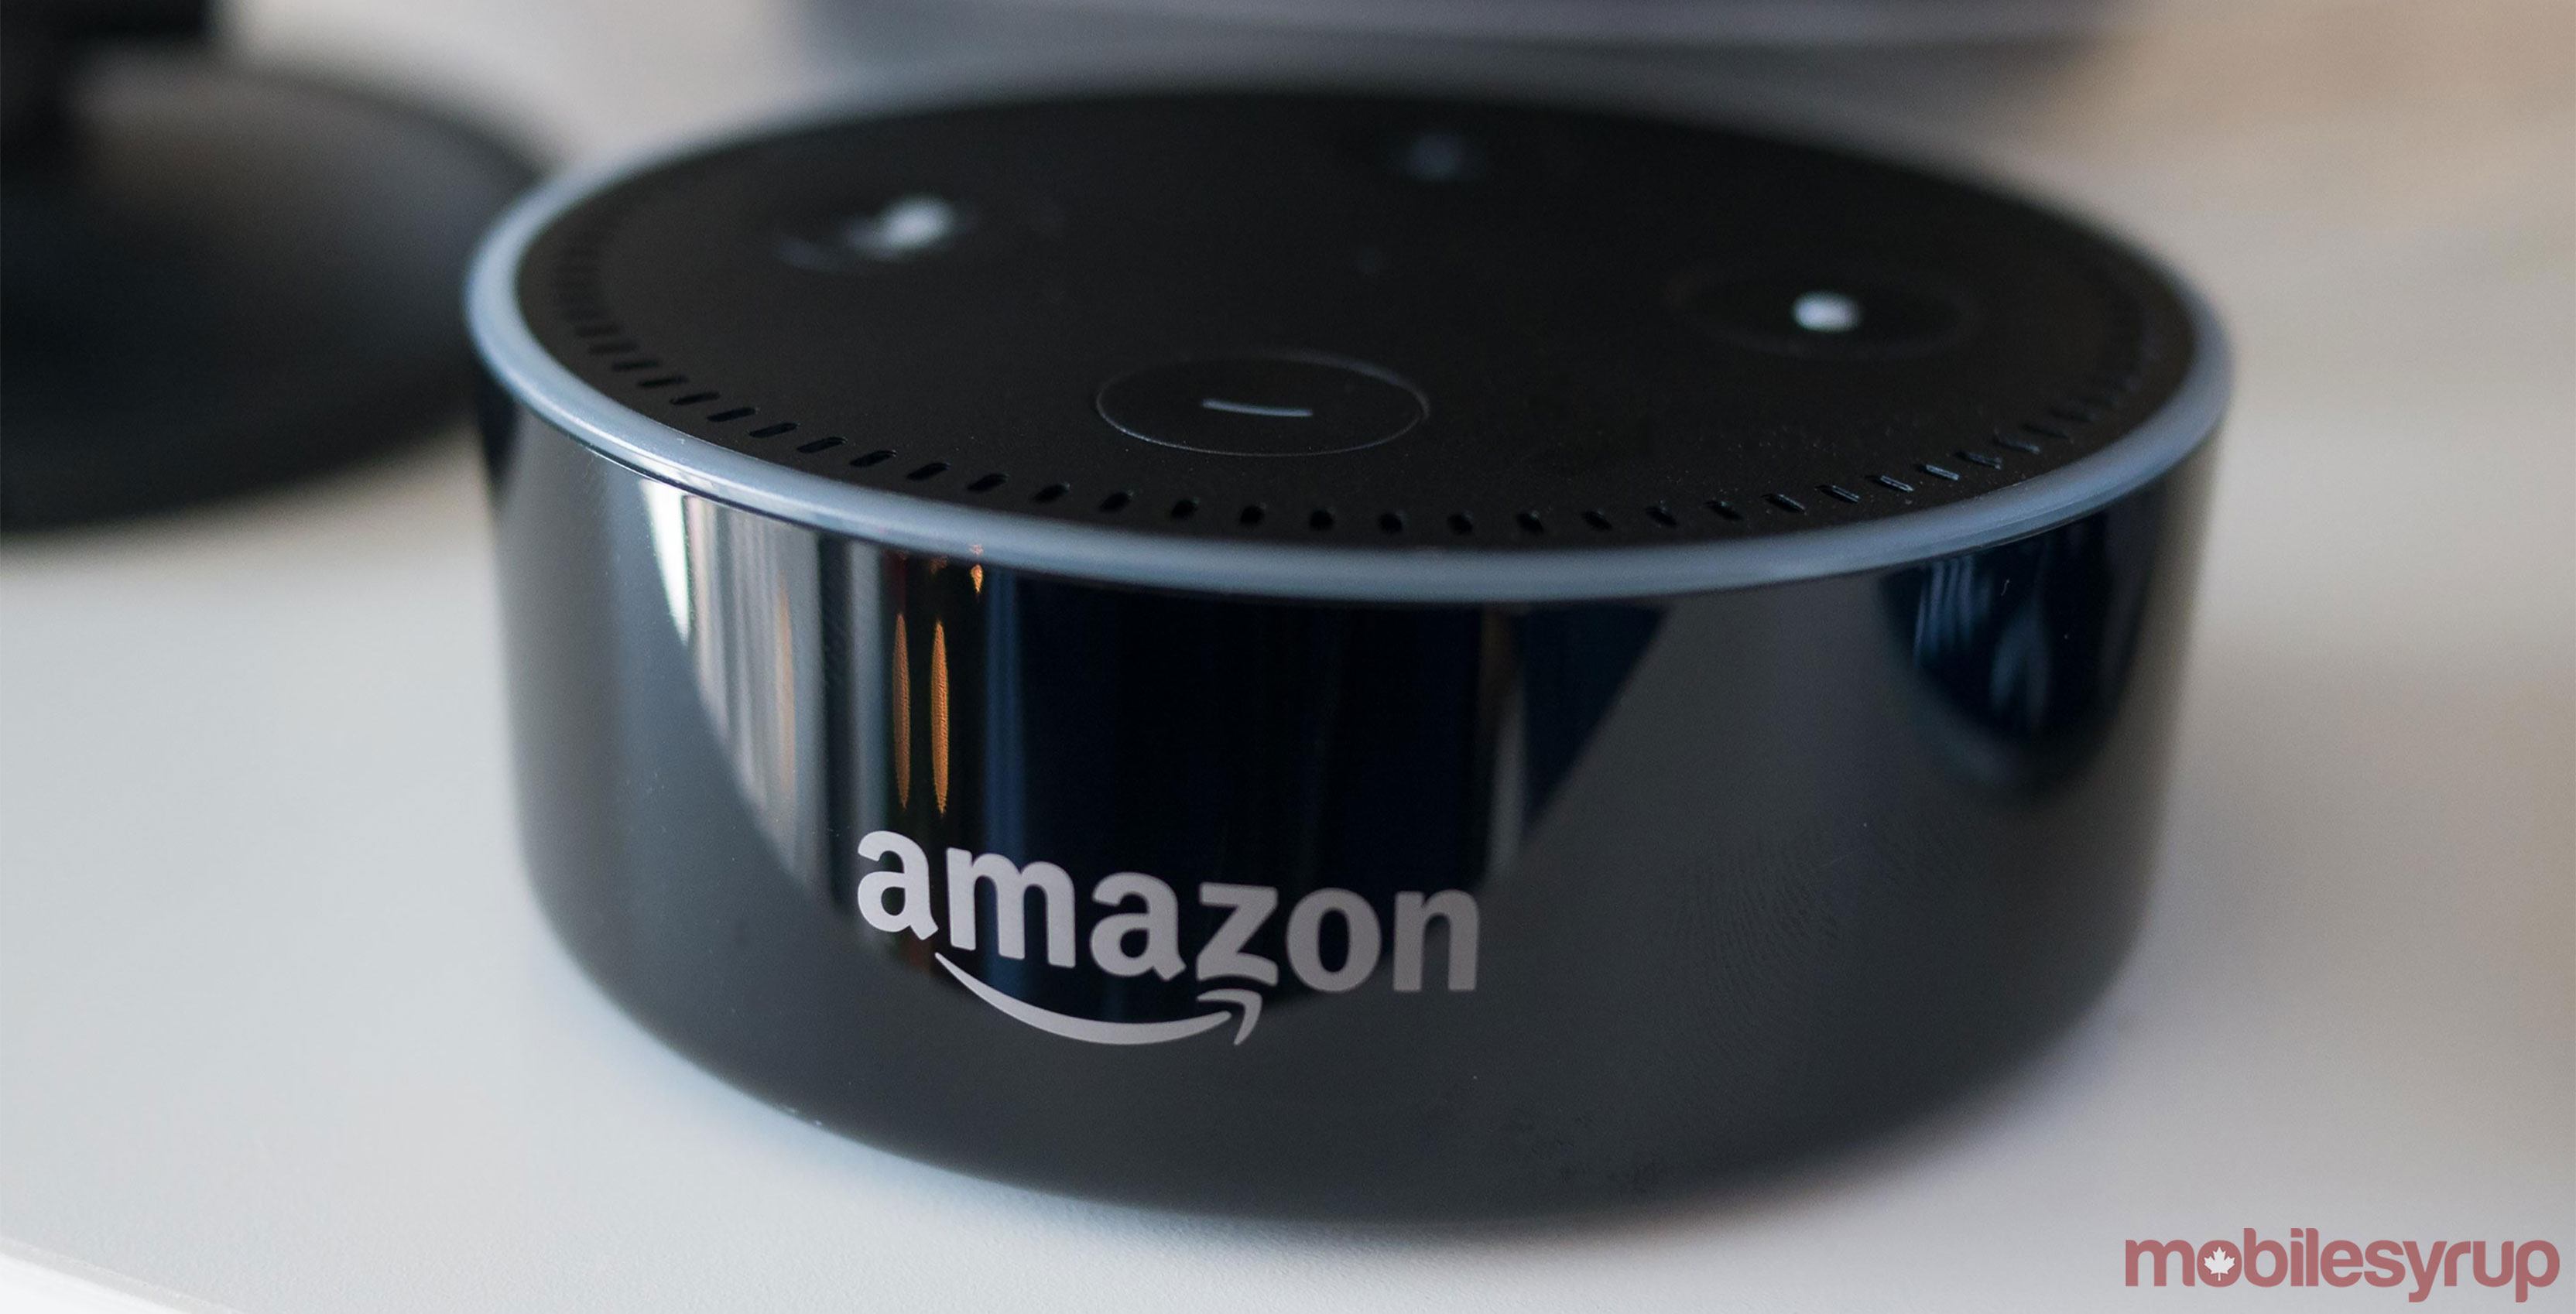 Amazon's Alexa is down for everyone right now